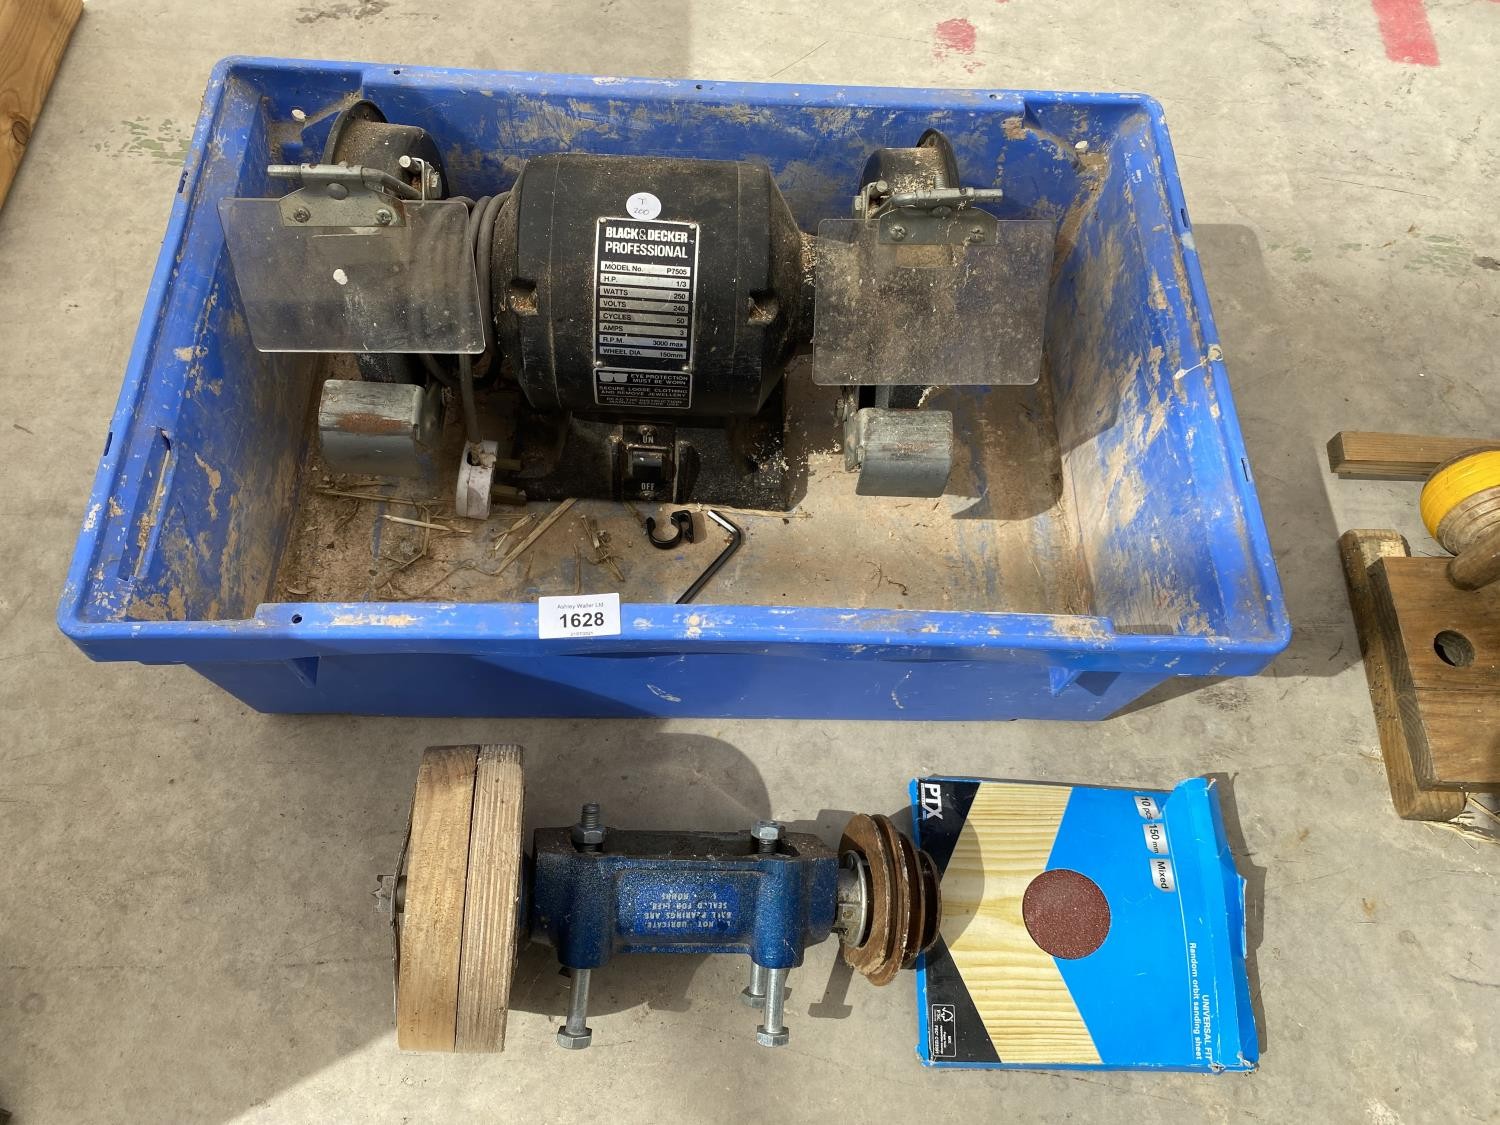 A BLACK AND DECKER WORK BENCH GRINDER AND A PULLEY